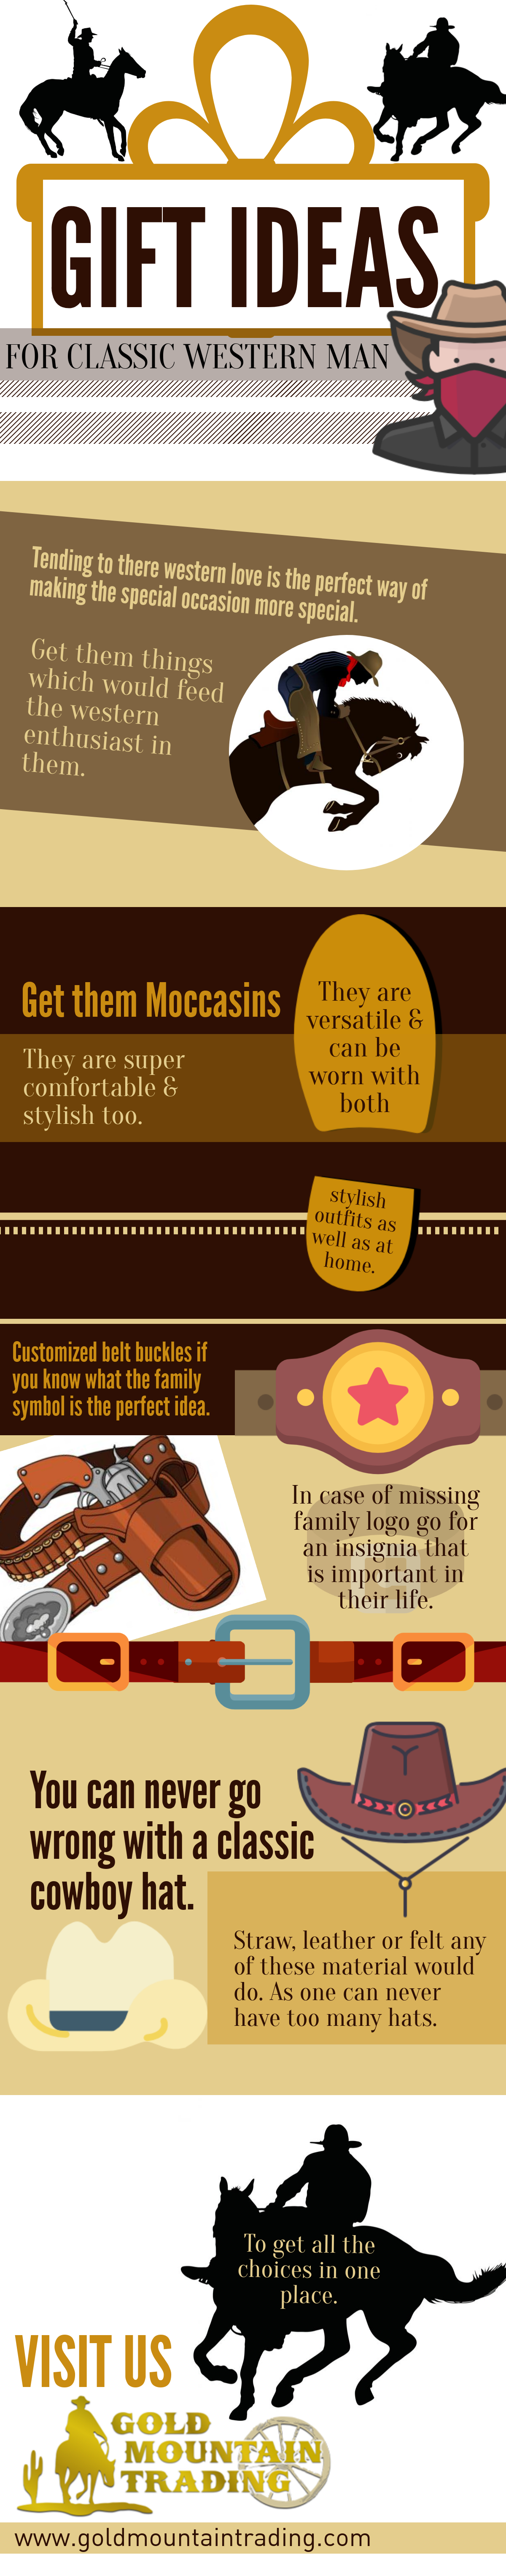 gift ideas infographic